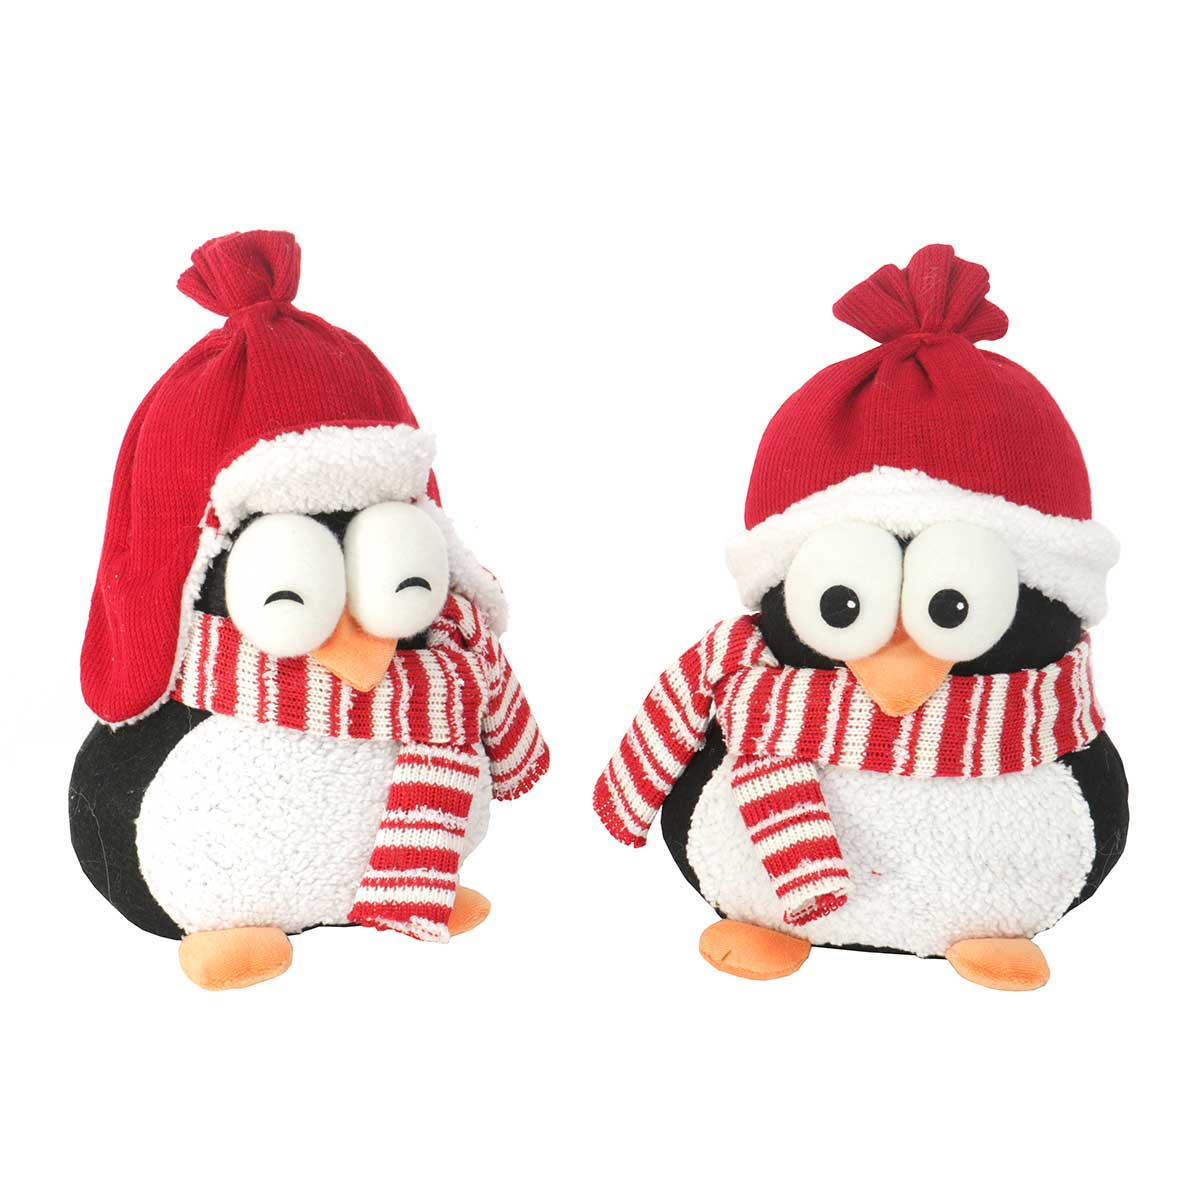 2 Piece Penguin Collectible Set Stocking